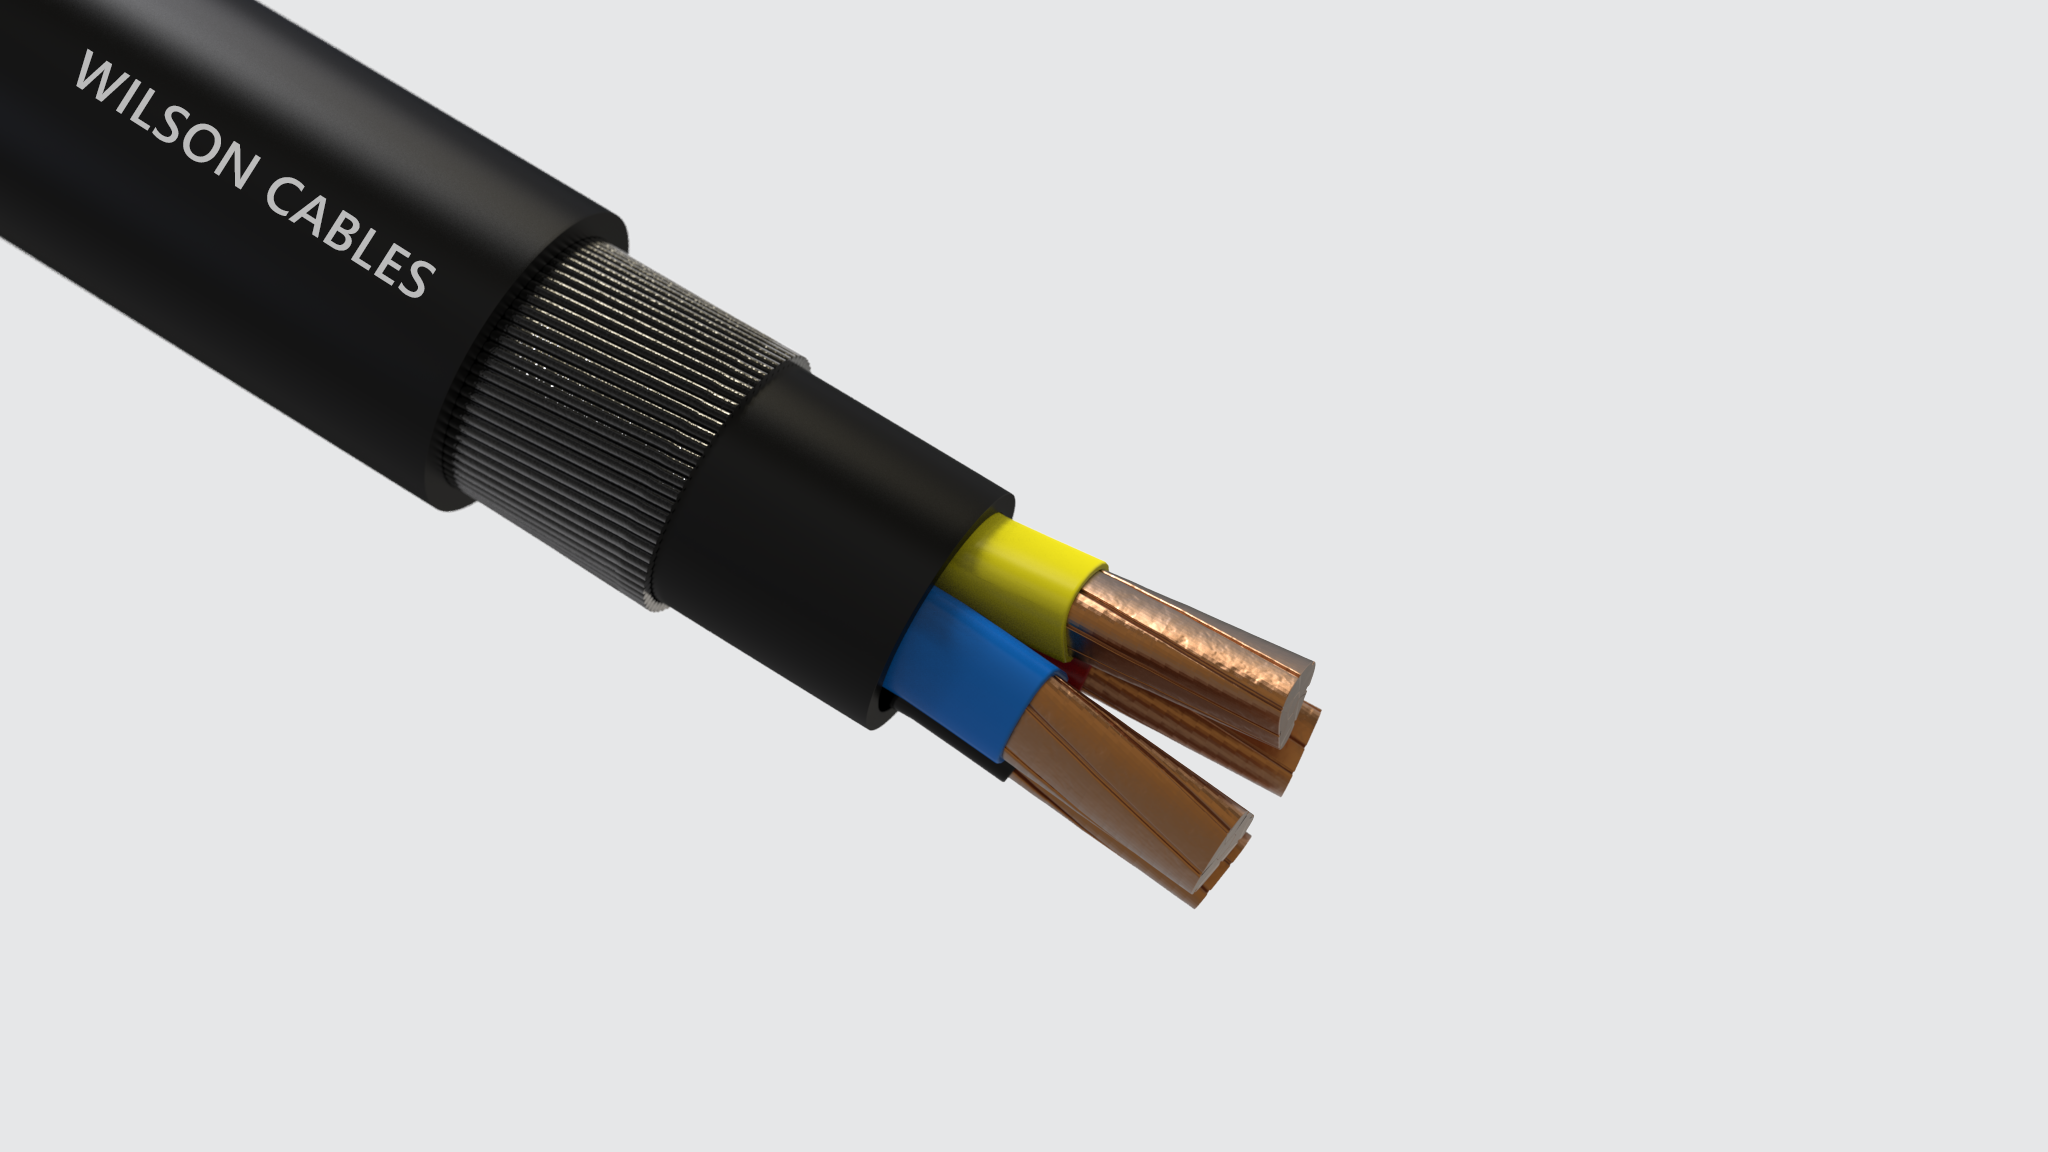 Wilson Cables Xlpe Insulated Pvc Sheathed Armoured Power